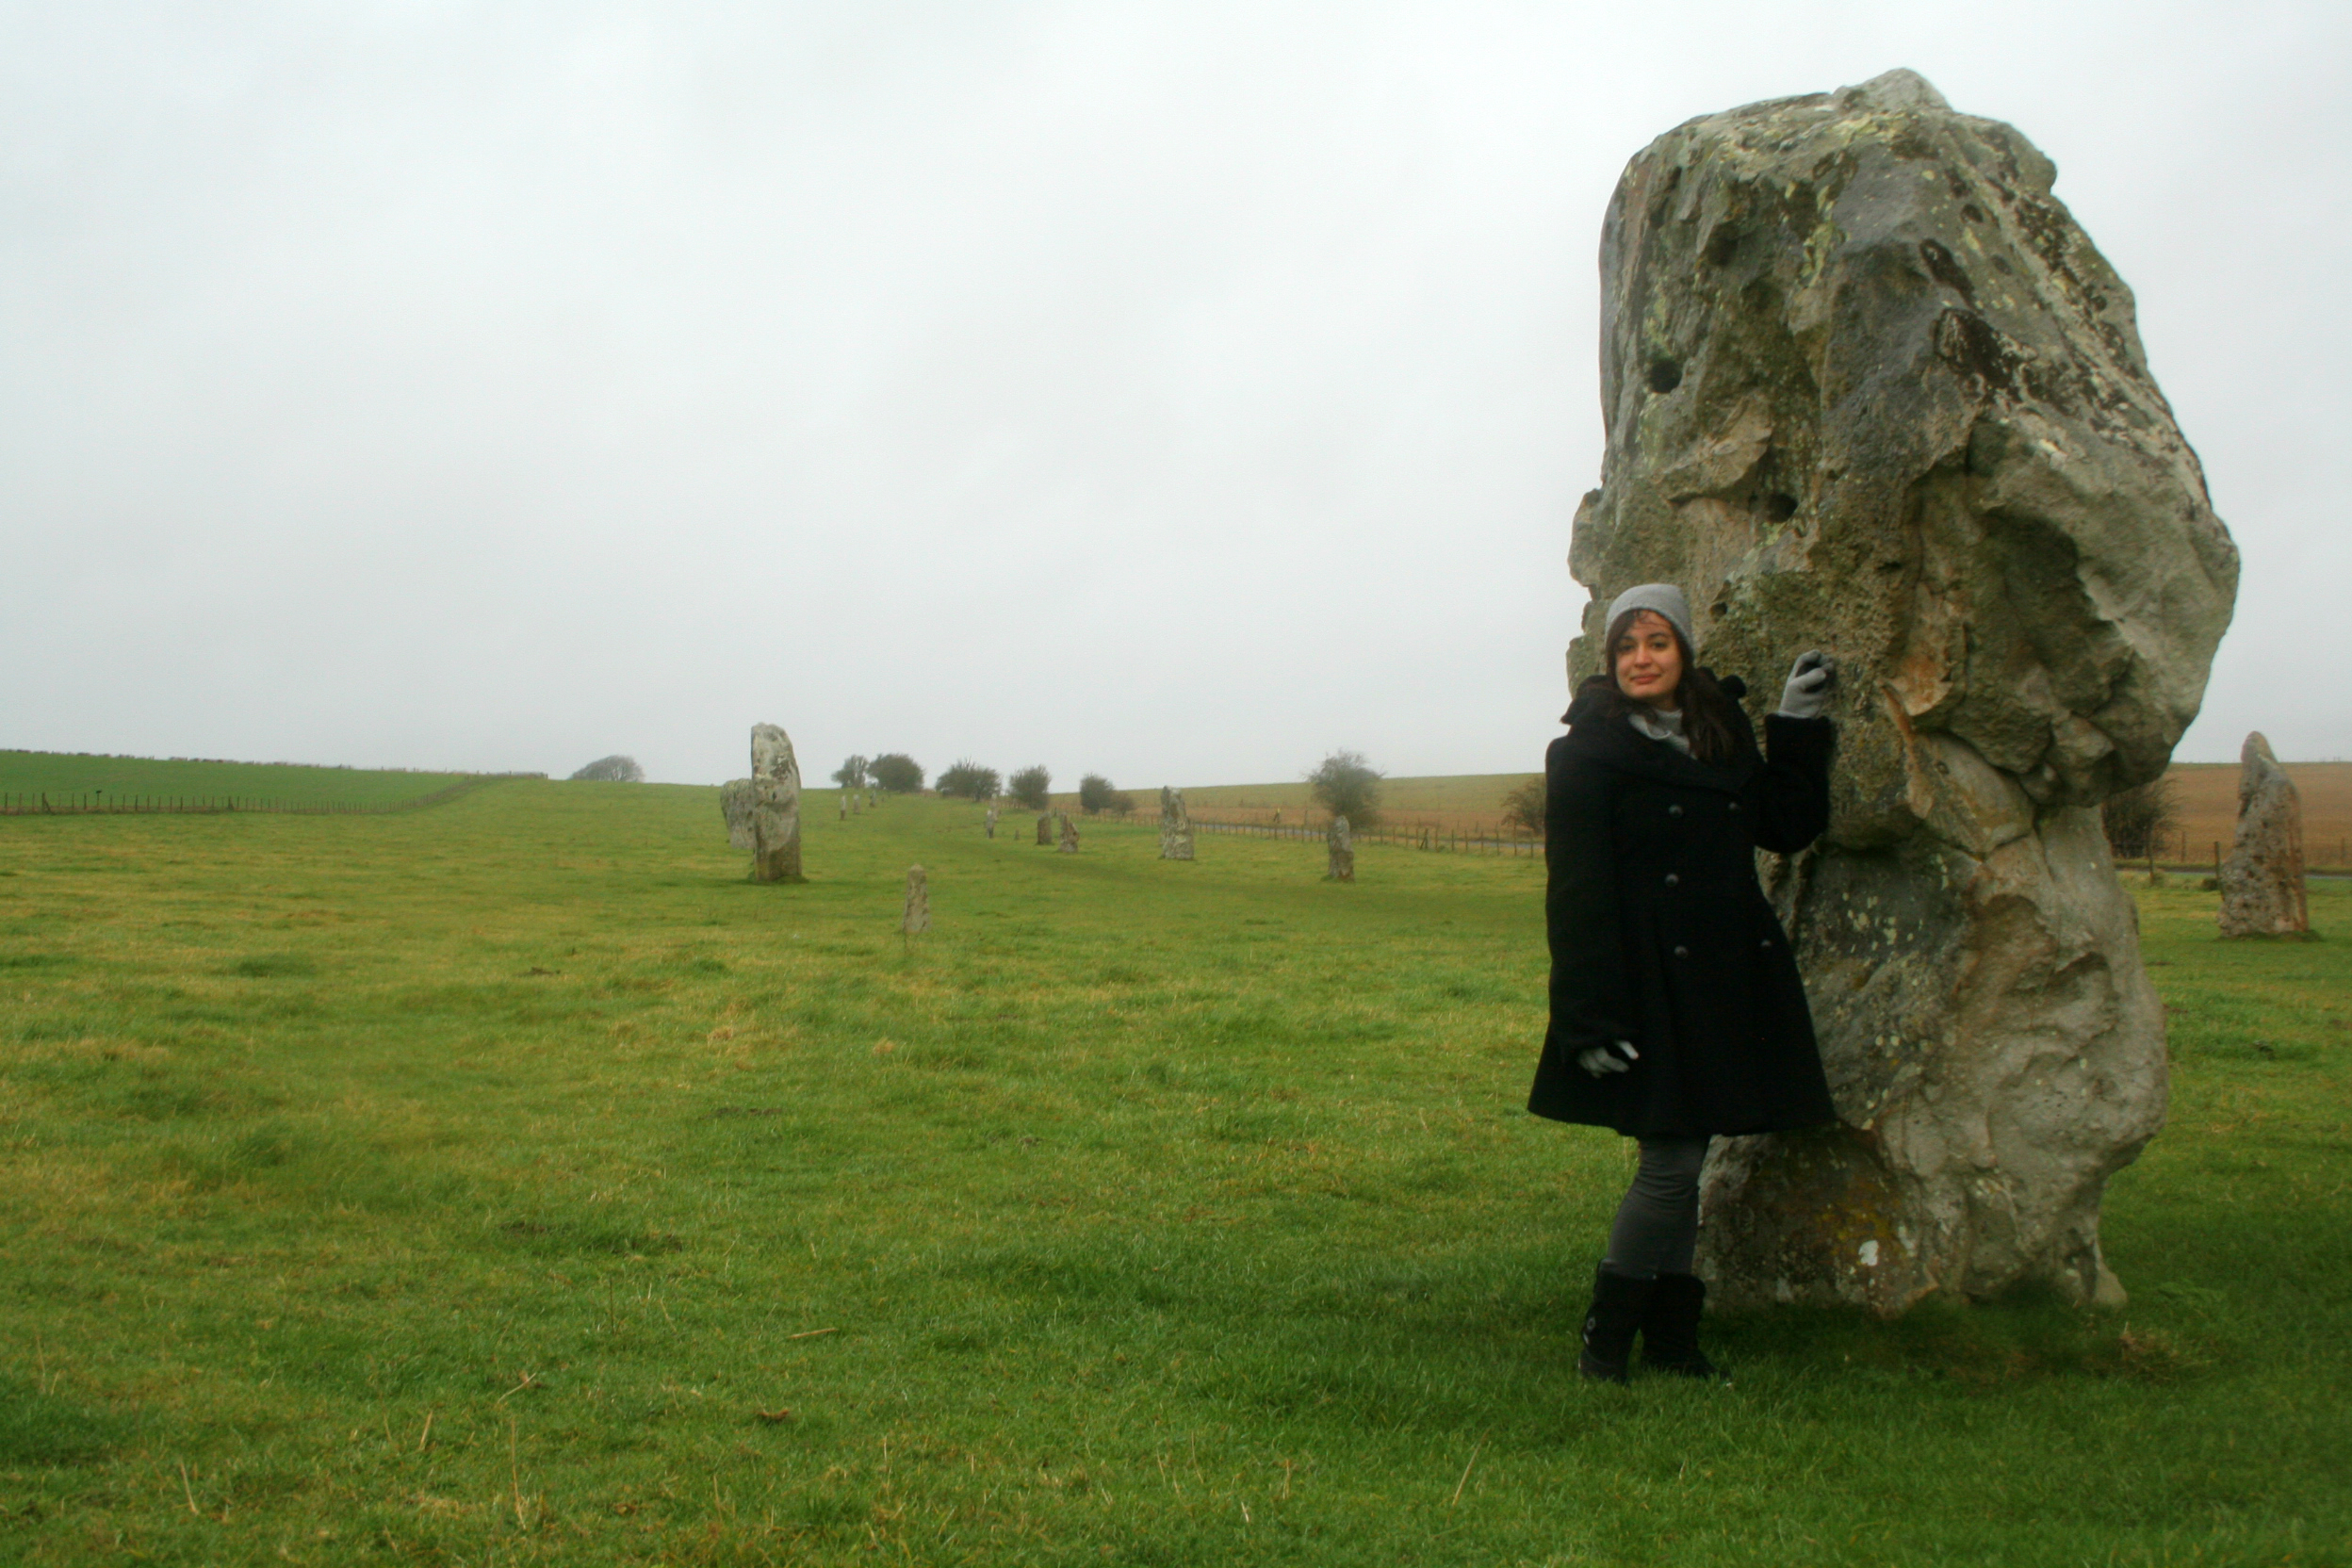 Alien Map or Prehistoric Relic? The Avebury Stone Circle